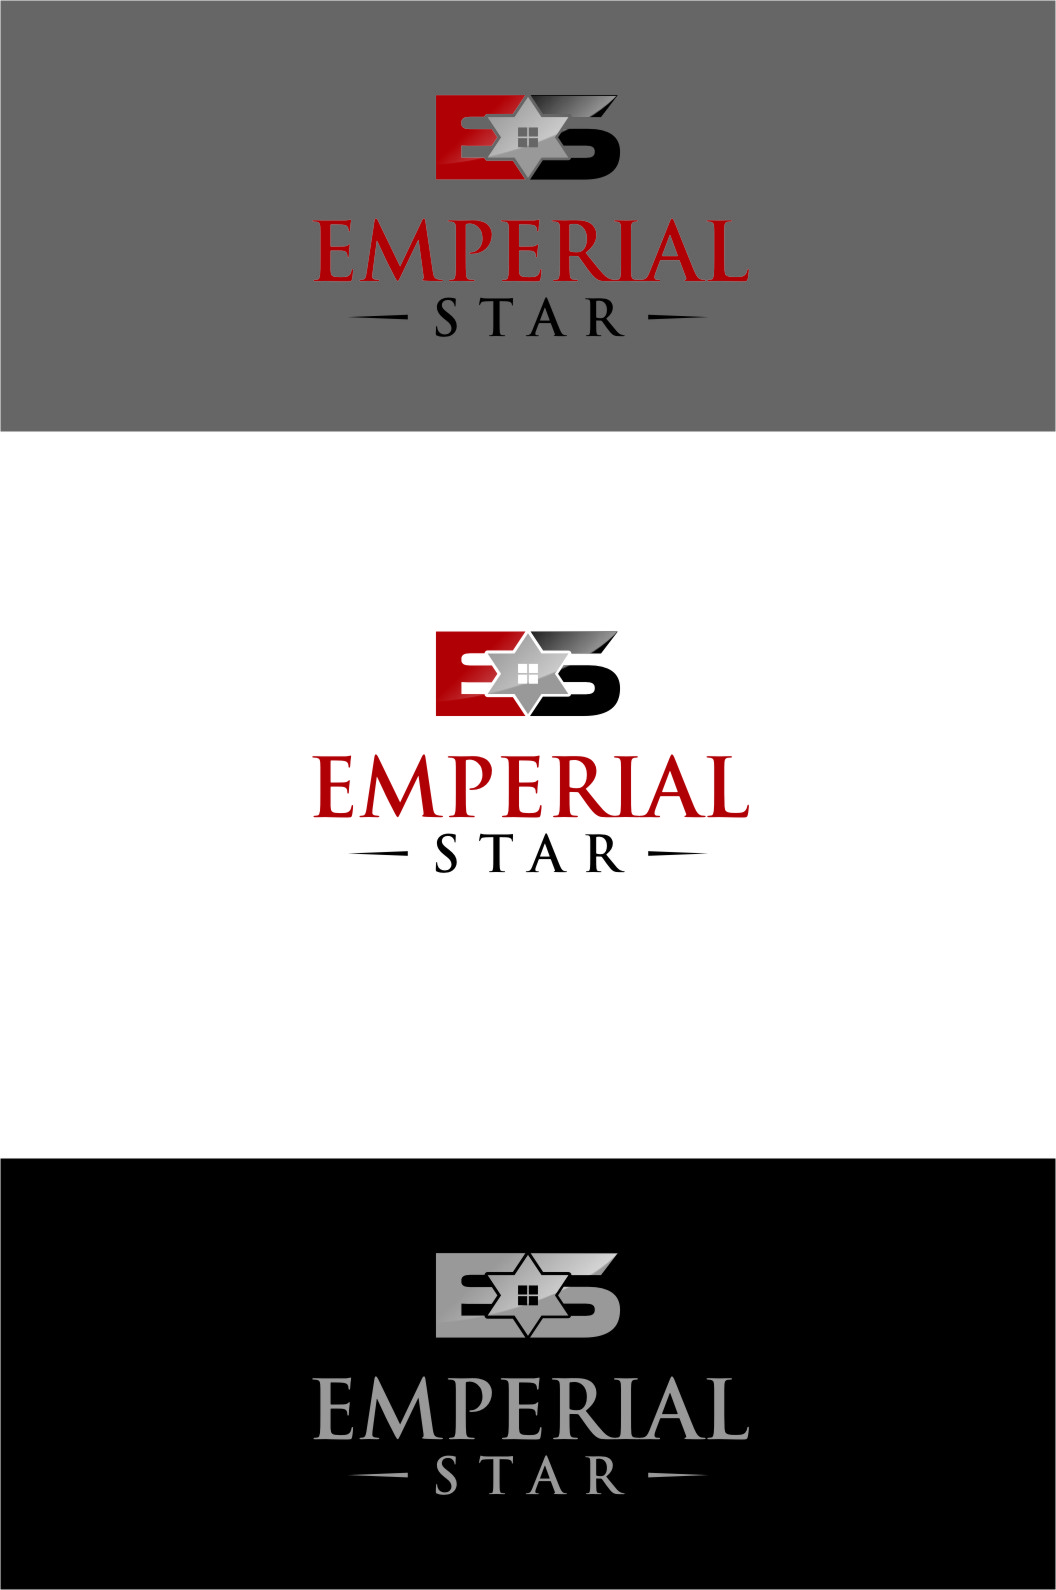 Logo Design by Ngepet_art - Entry No. 84 in the Logo Design Contest Emperial Star Logo Design.